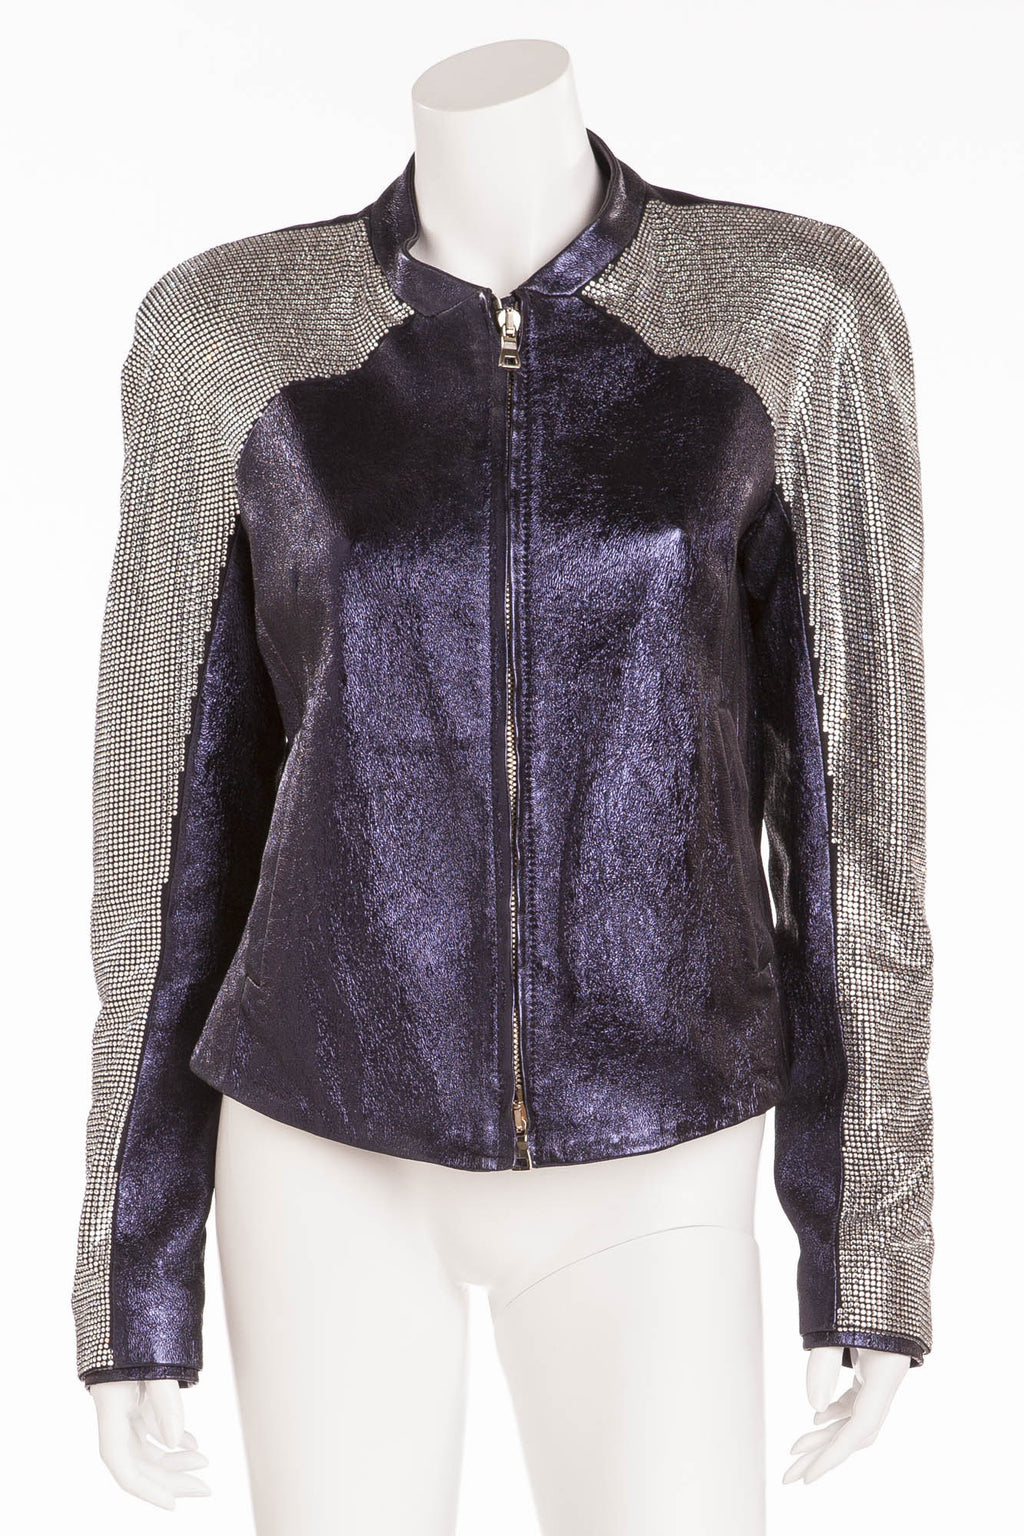 Balmain - Unique New with Tags Navy Blue Pearlescent Leather Jacket w/Rhinestone Arms - FR 40